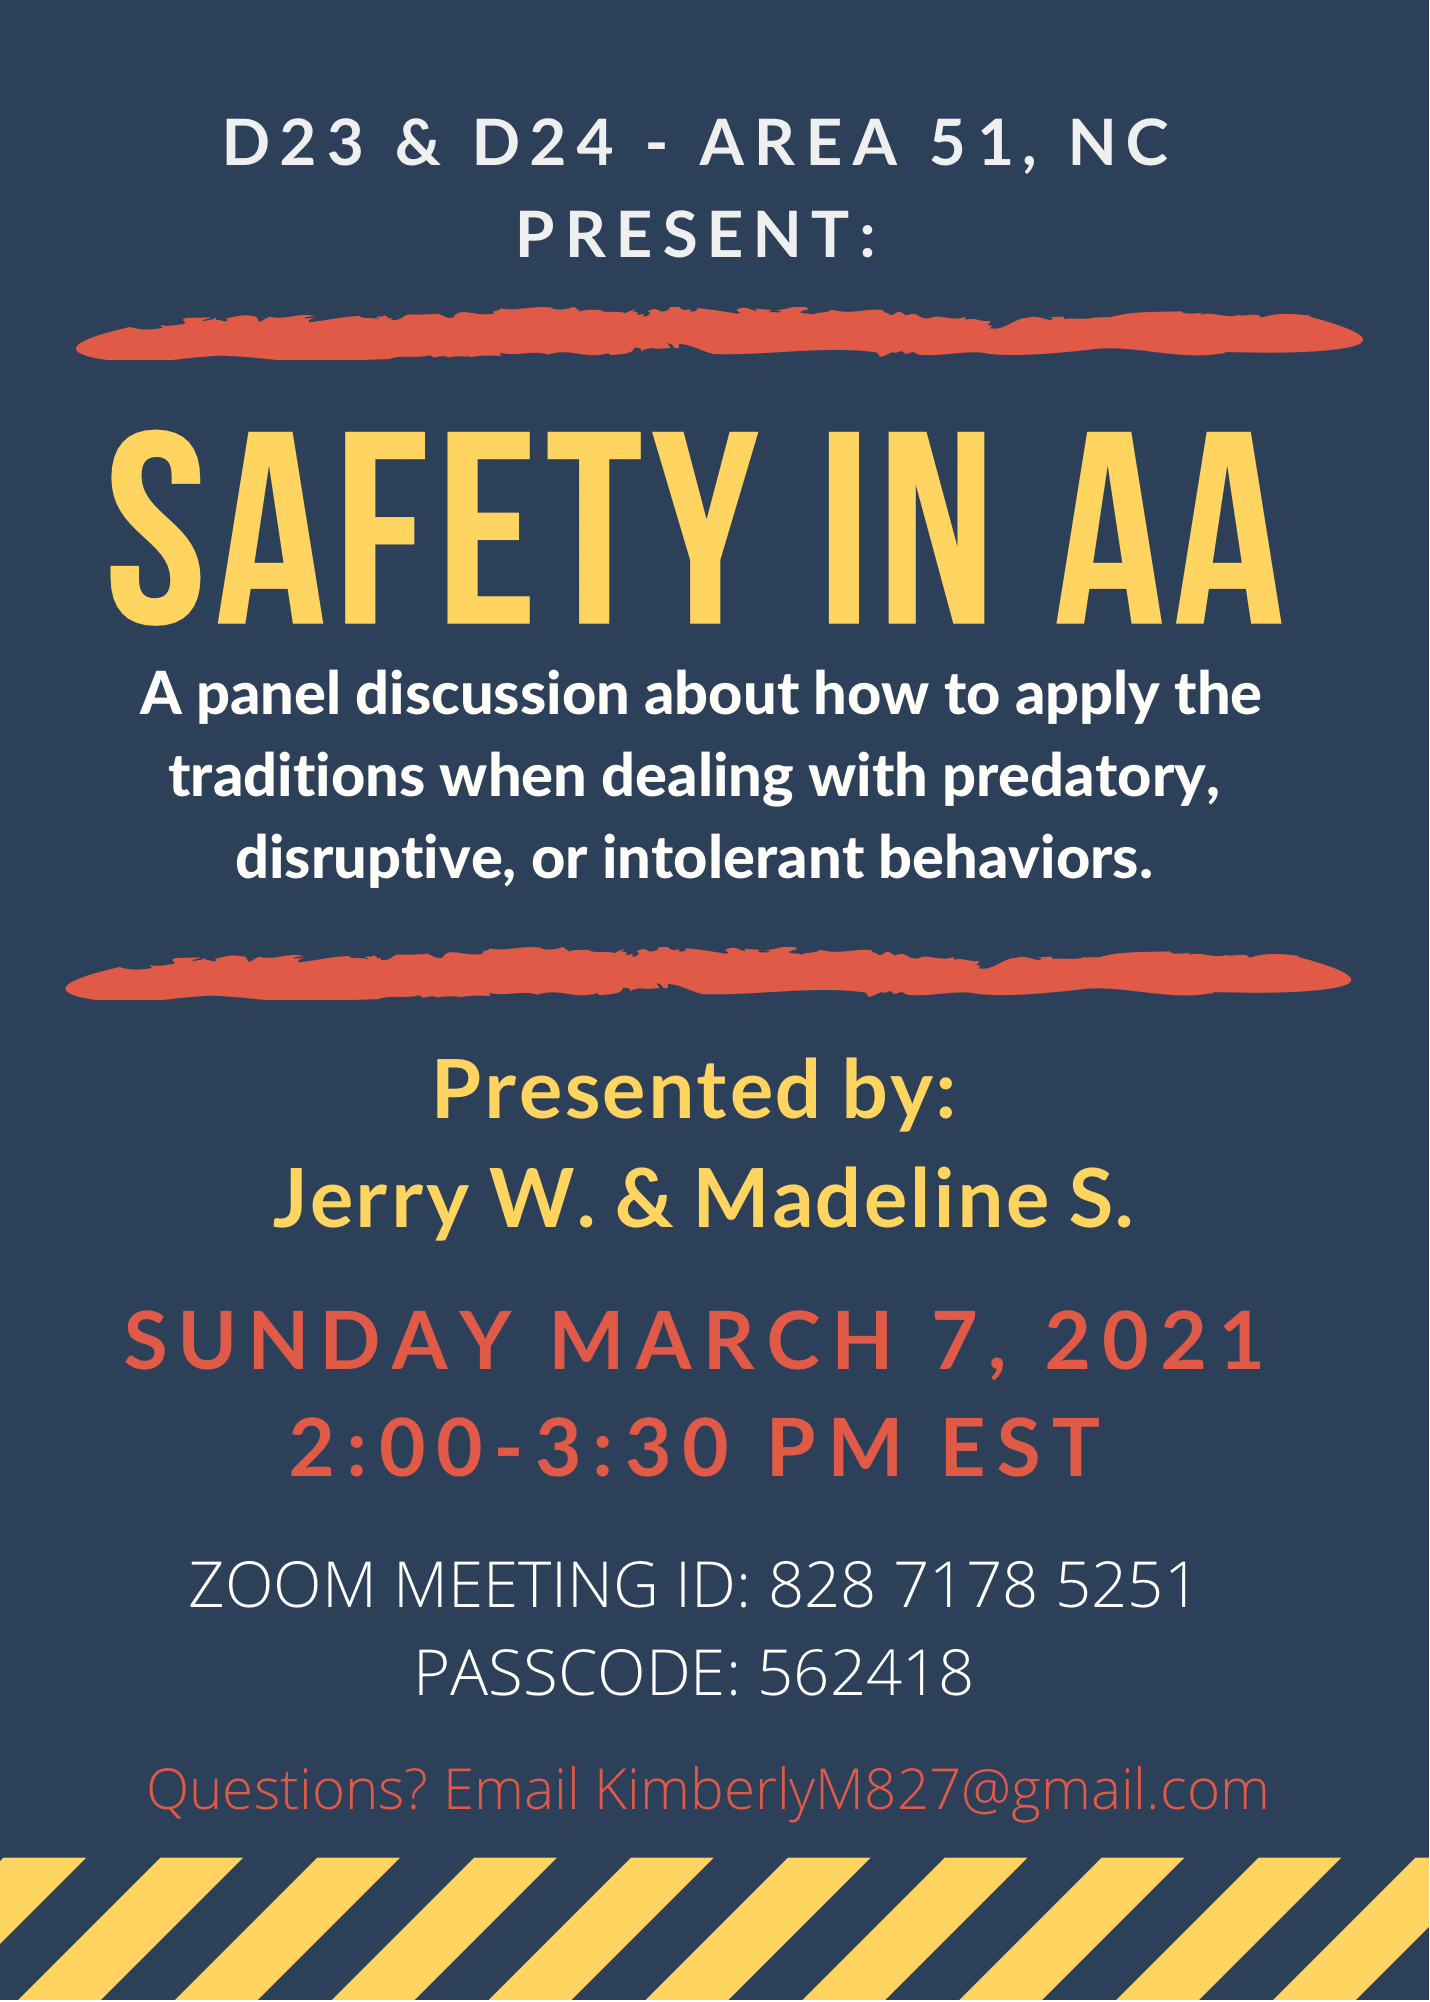 Safety in AA - A District 23 and 24 Panel Discussion